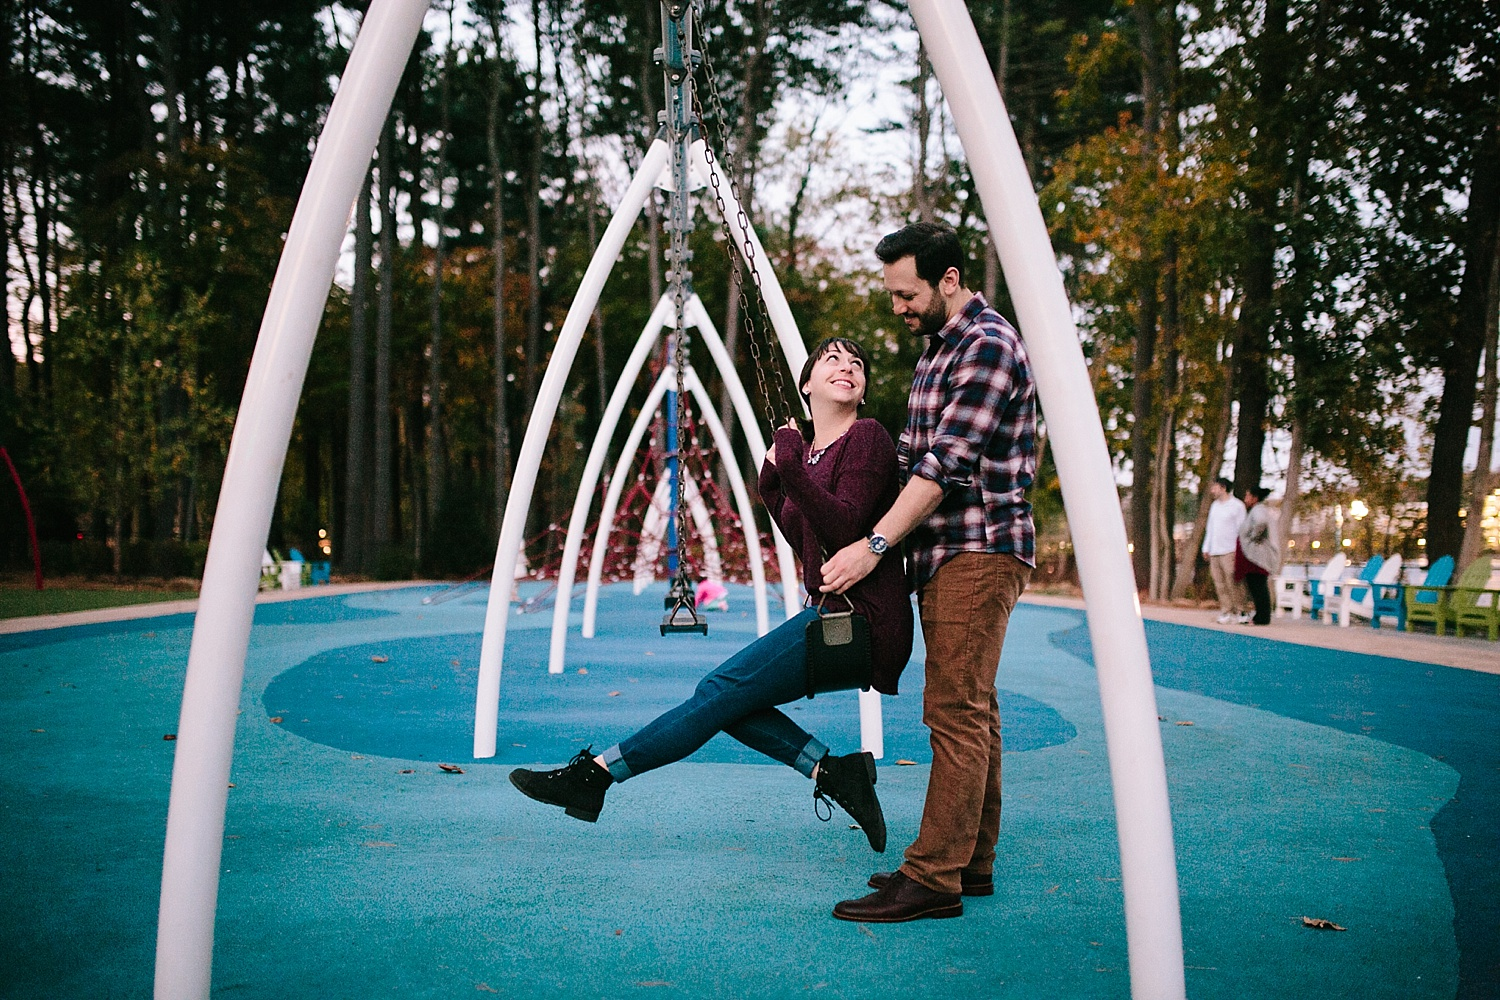 michelleanddaniel_eaglerockreservation_engagement_image034.jpg